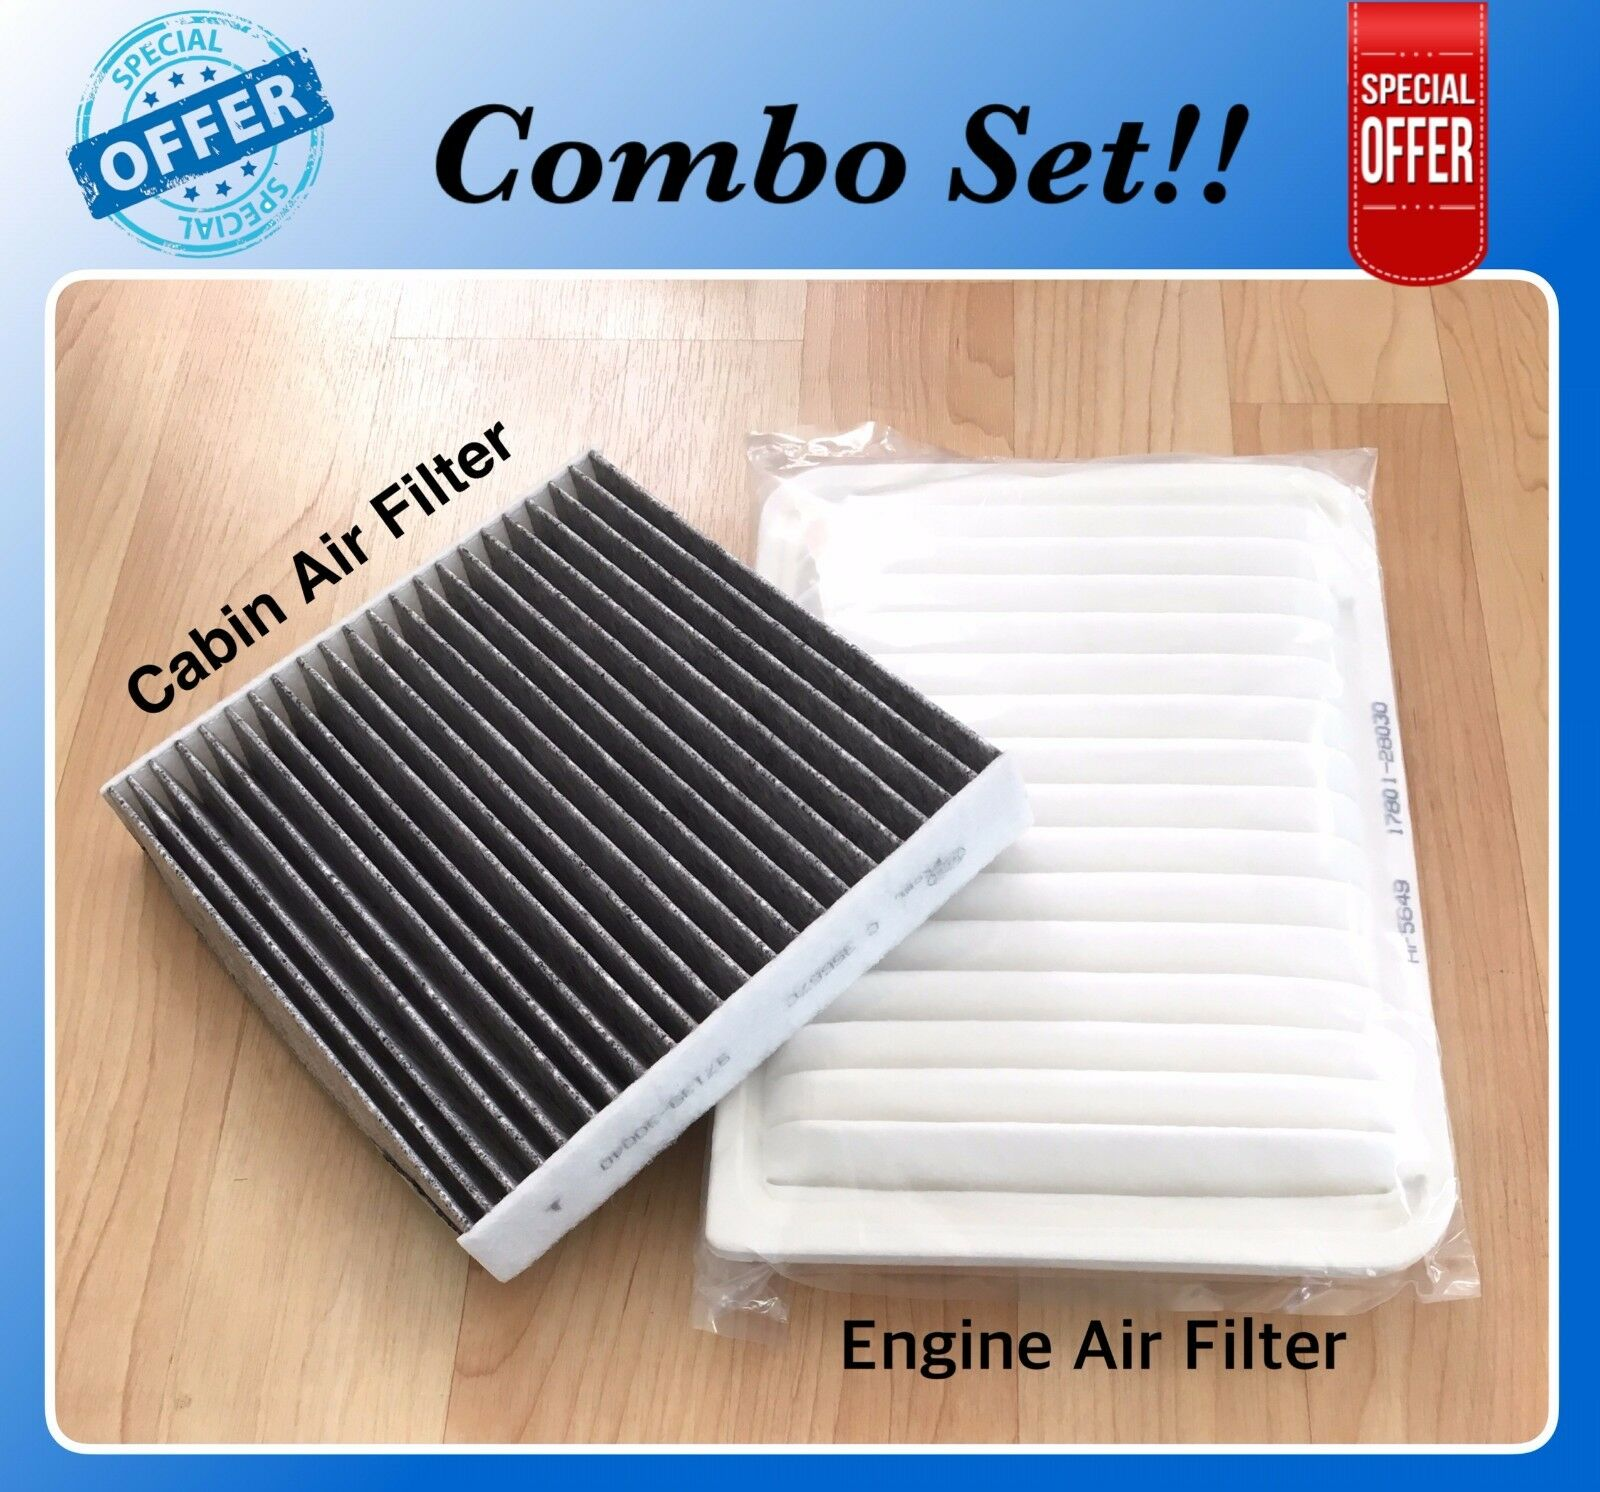 Engine & CARBONIZED Cabin Air Filter For CAMRY VENZA 4cyl 07-17 A5649 C35667